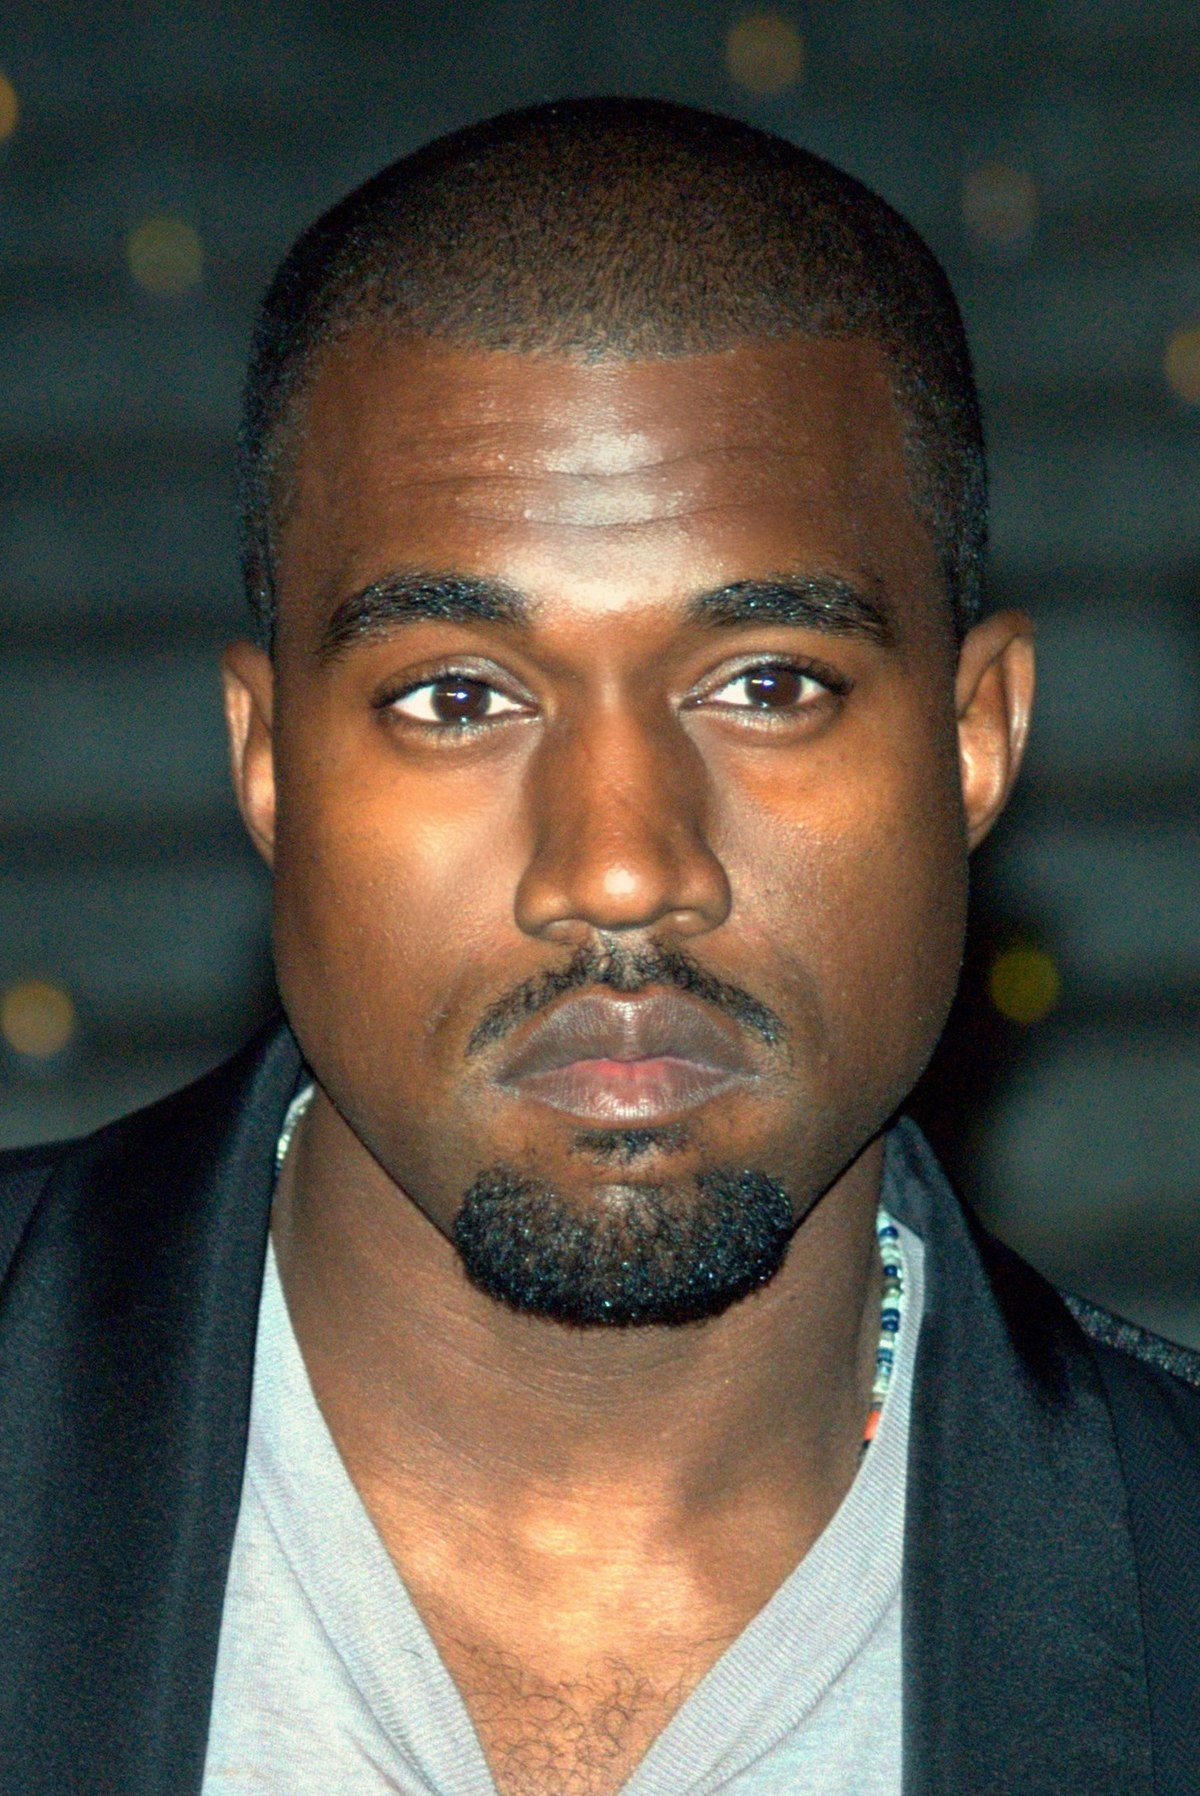 KANYE WEST ANNOUNCES THE DETAILS OF HIS 3RD 'DONDA' LISTENING PARTY IN CHICAGO